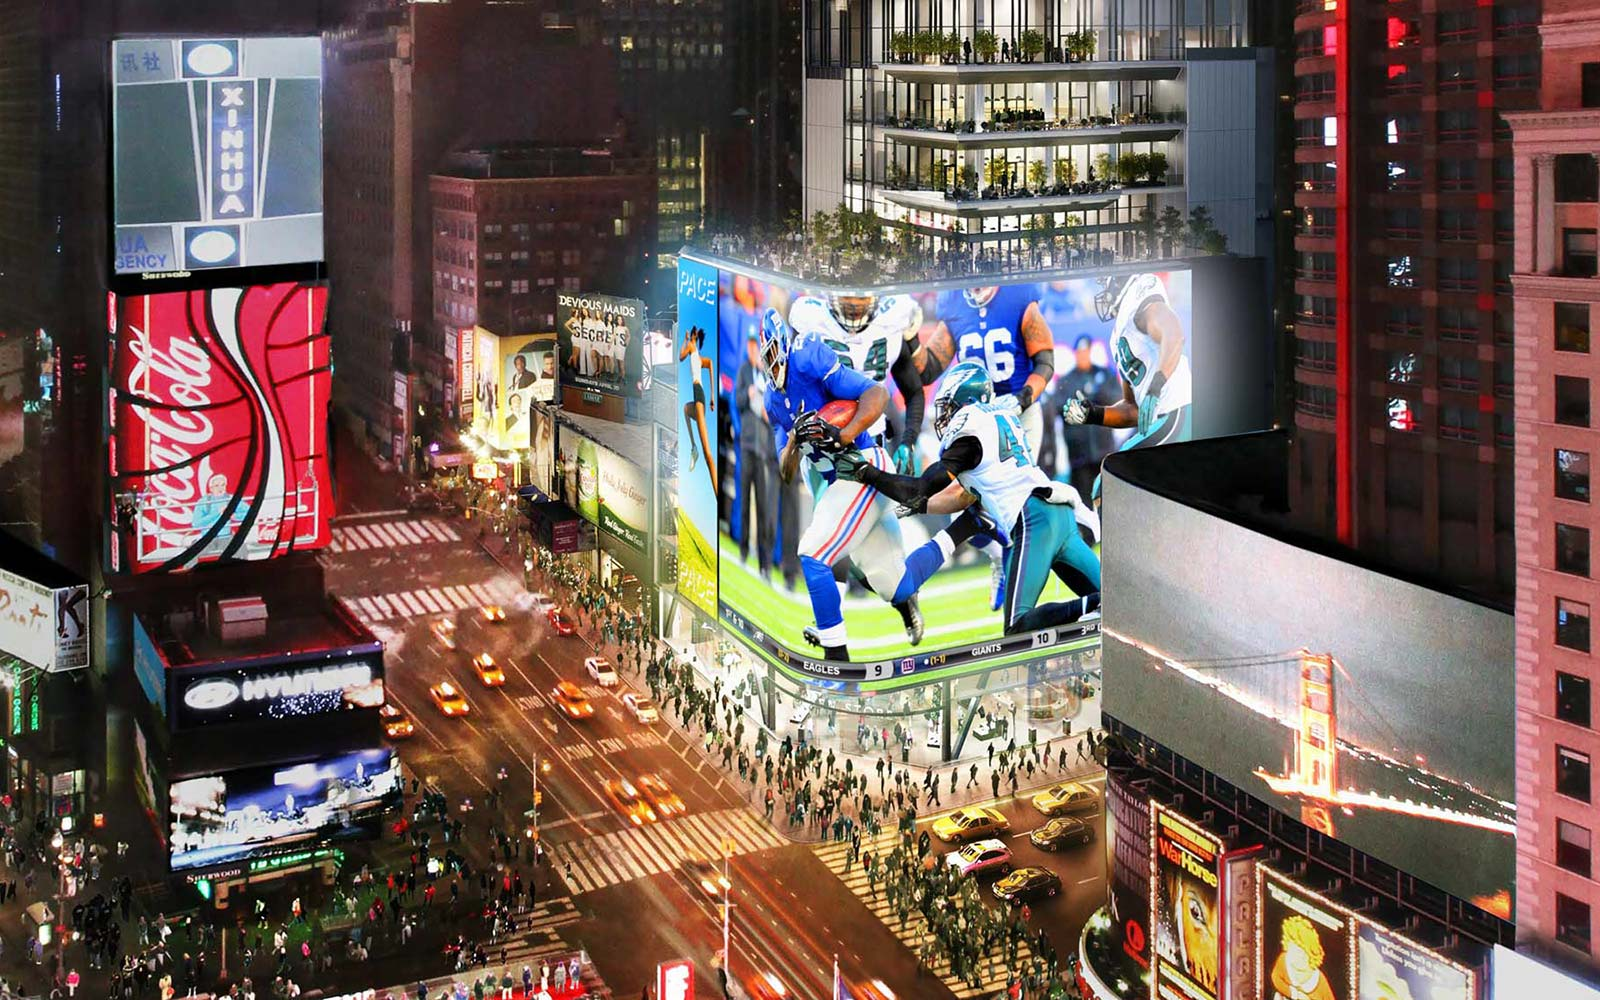 20 Times Square Edition Hotel New York City LED Billboard Advertising